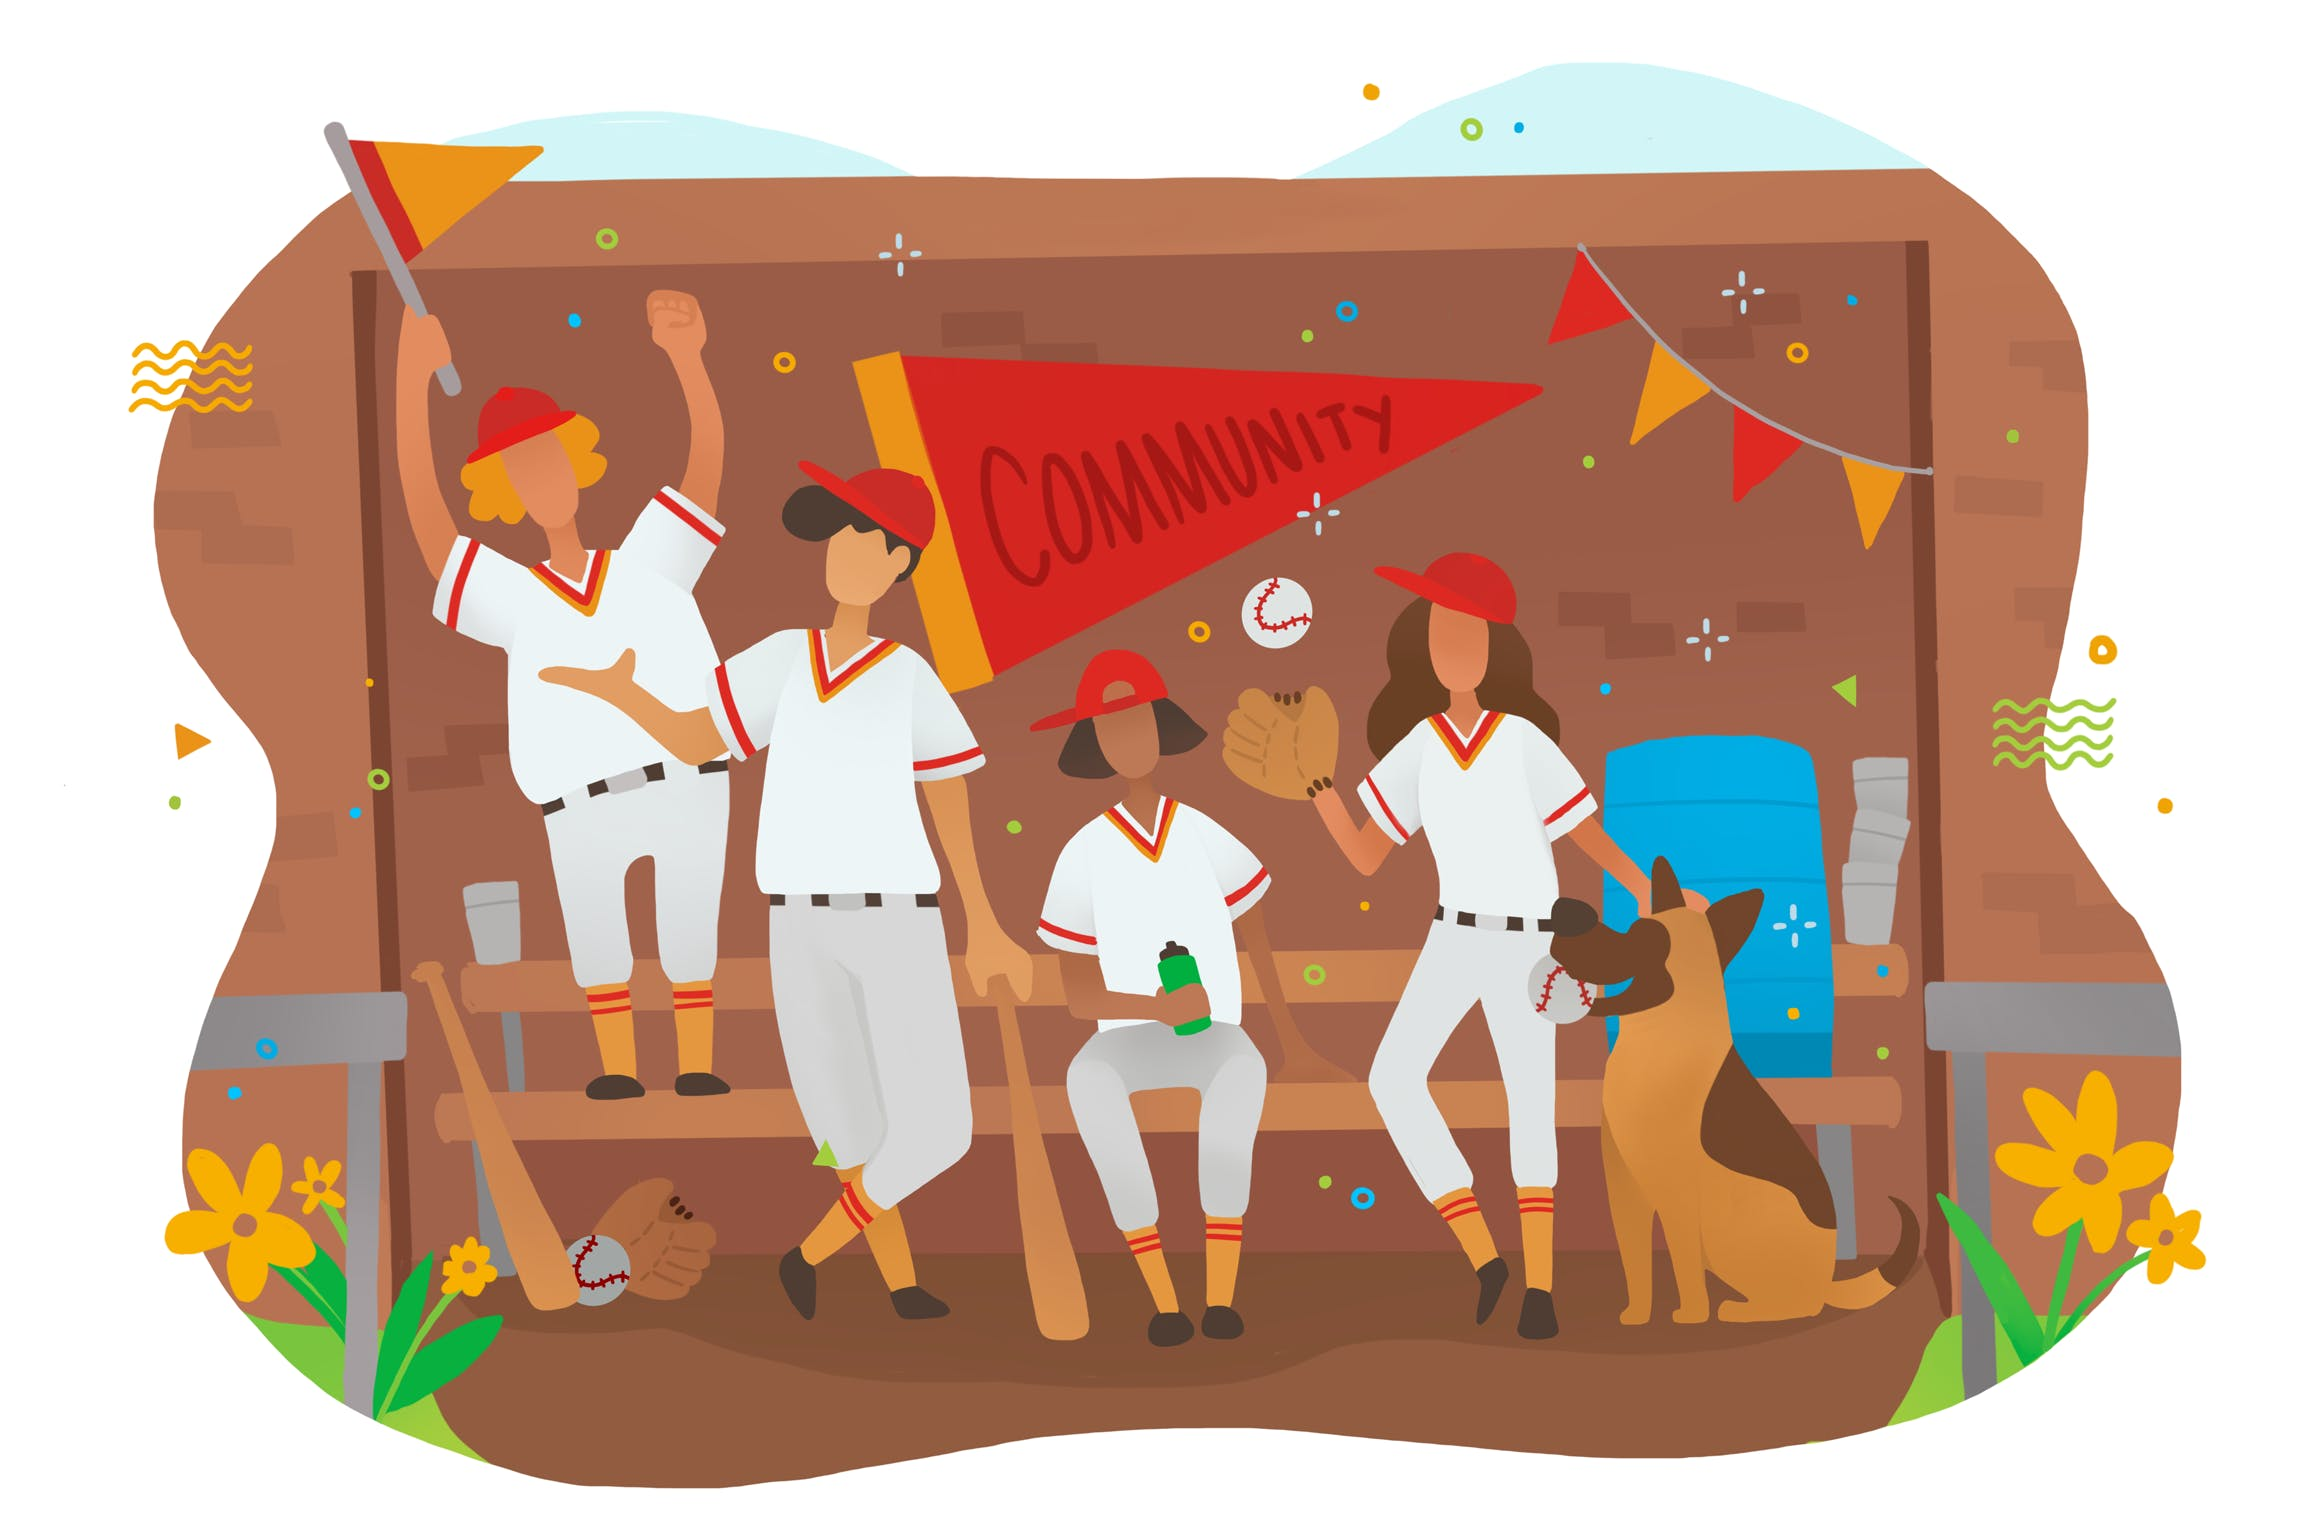 Colourful cartoon illustration of a baseball team sitting and standing on their bench decorated with flags.